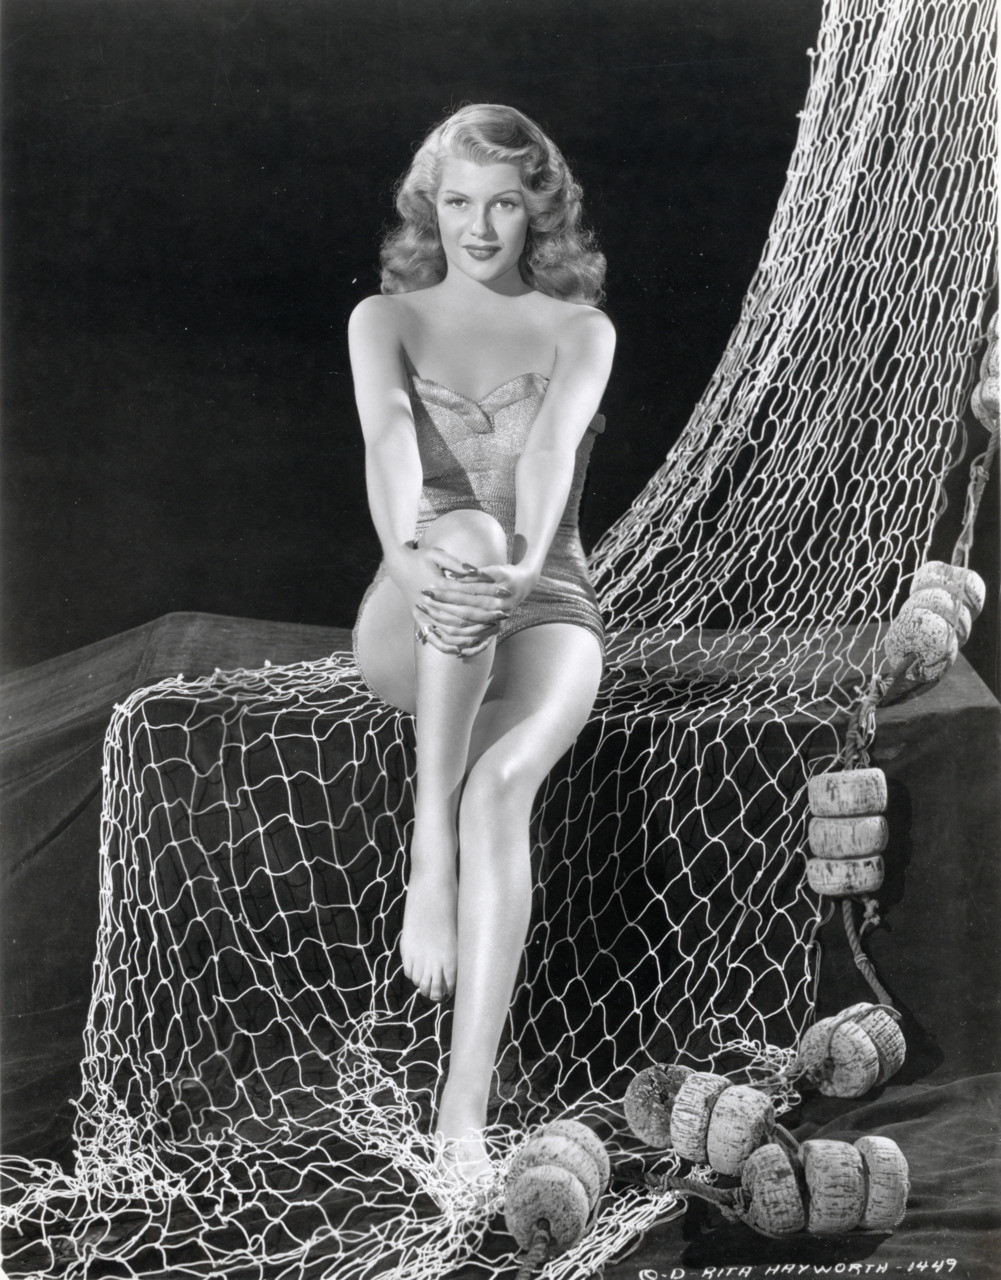 Rita Hayworth is sitting, holding her knee with both her hands. She is sitting on the net and is wearing a swimsuit.